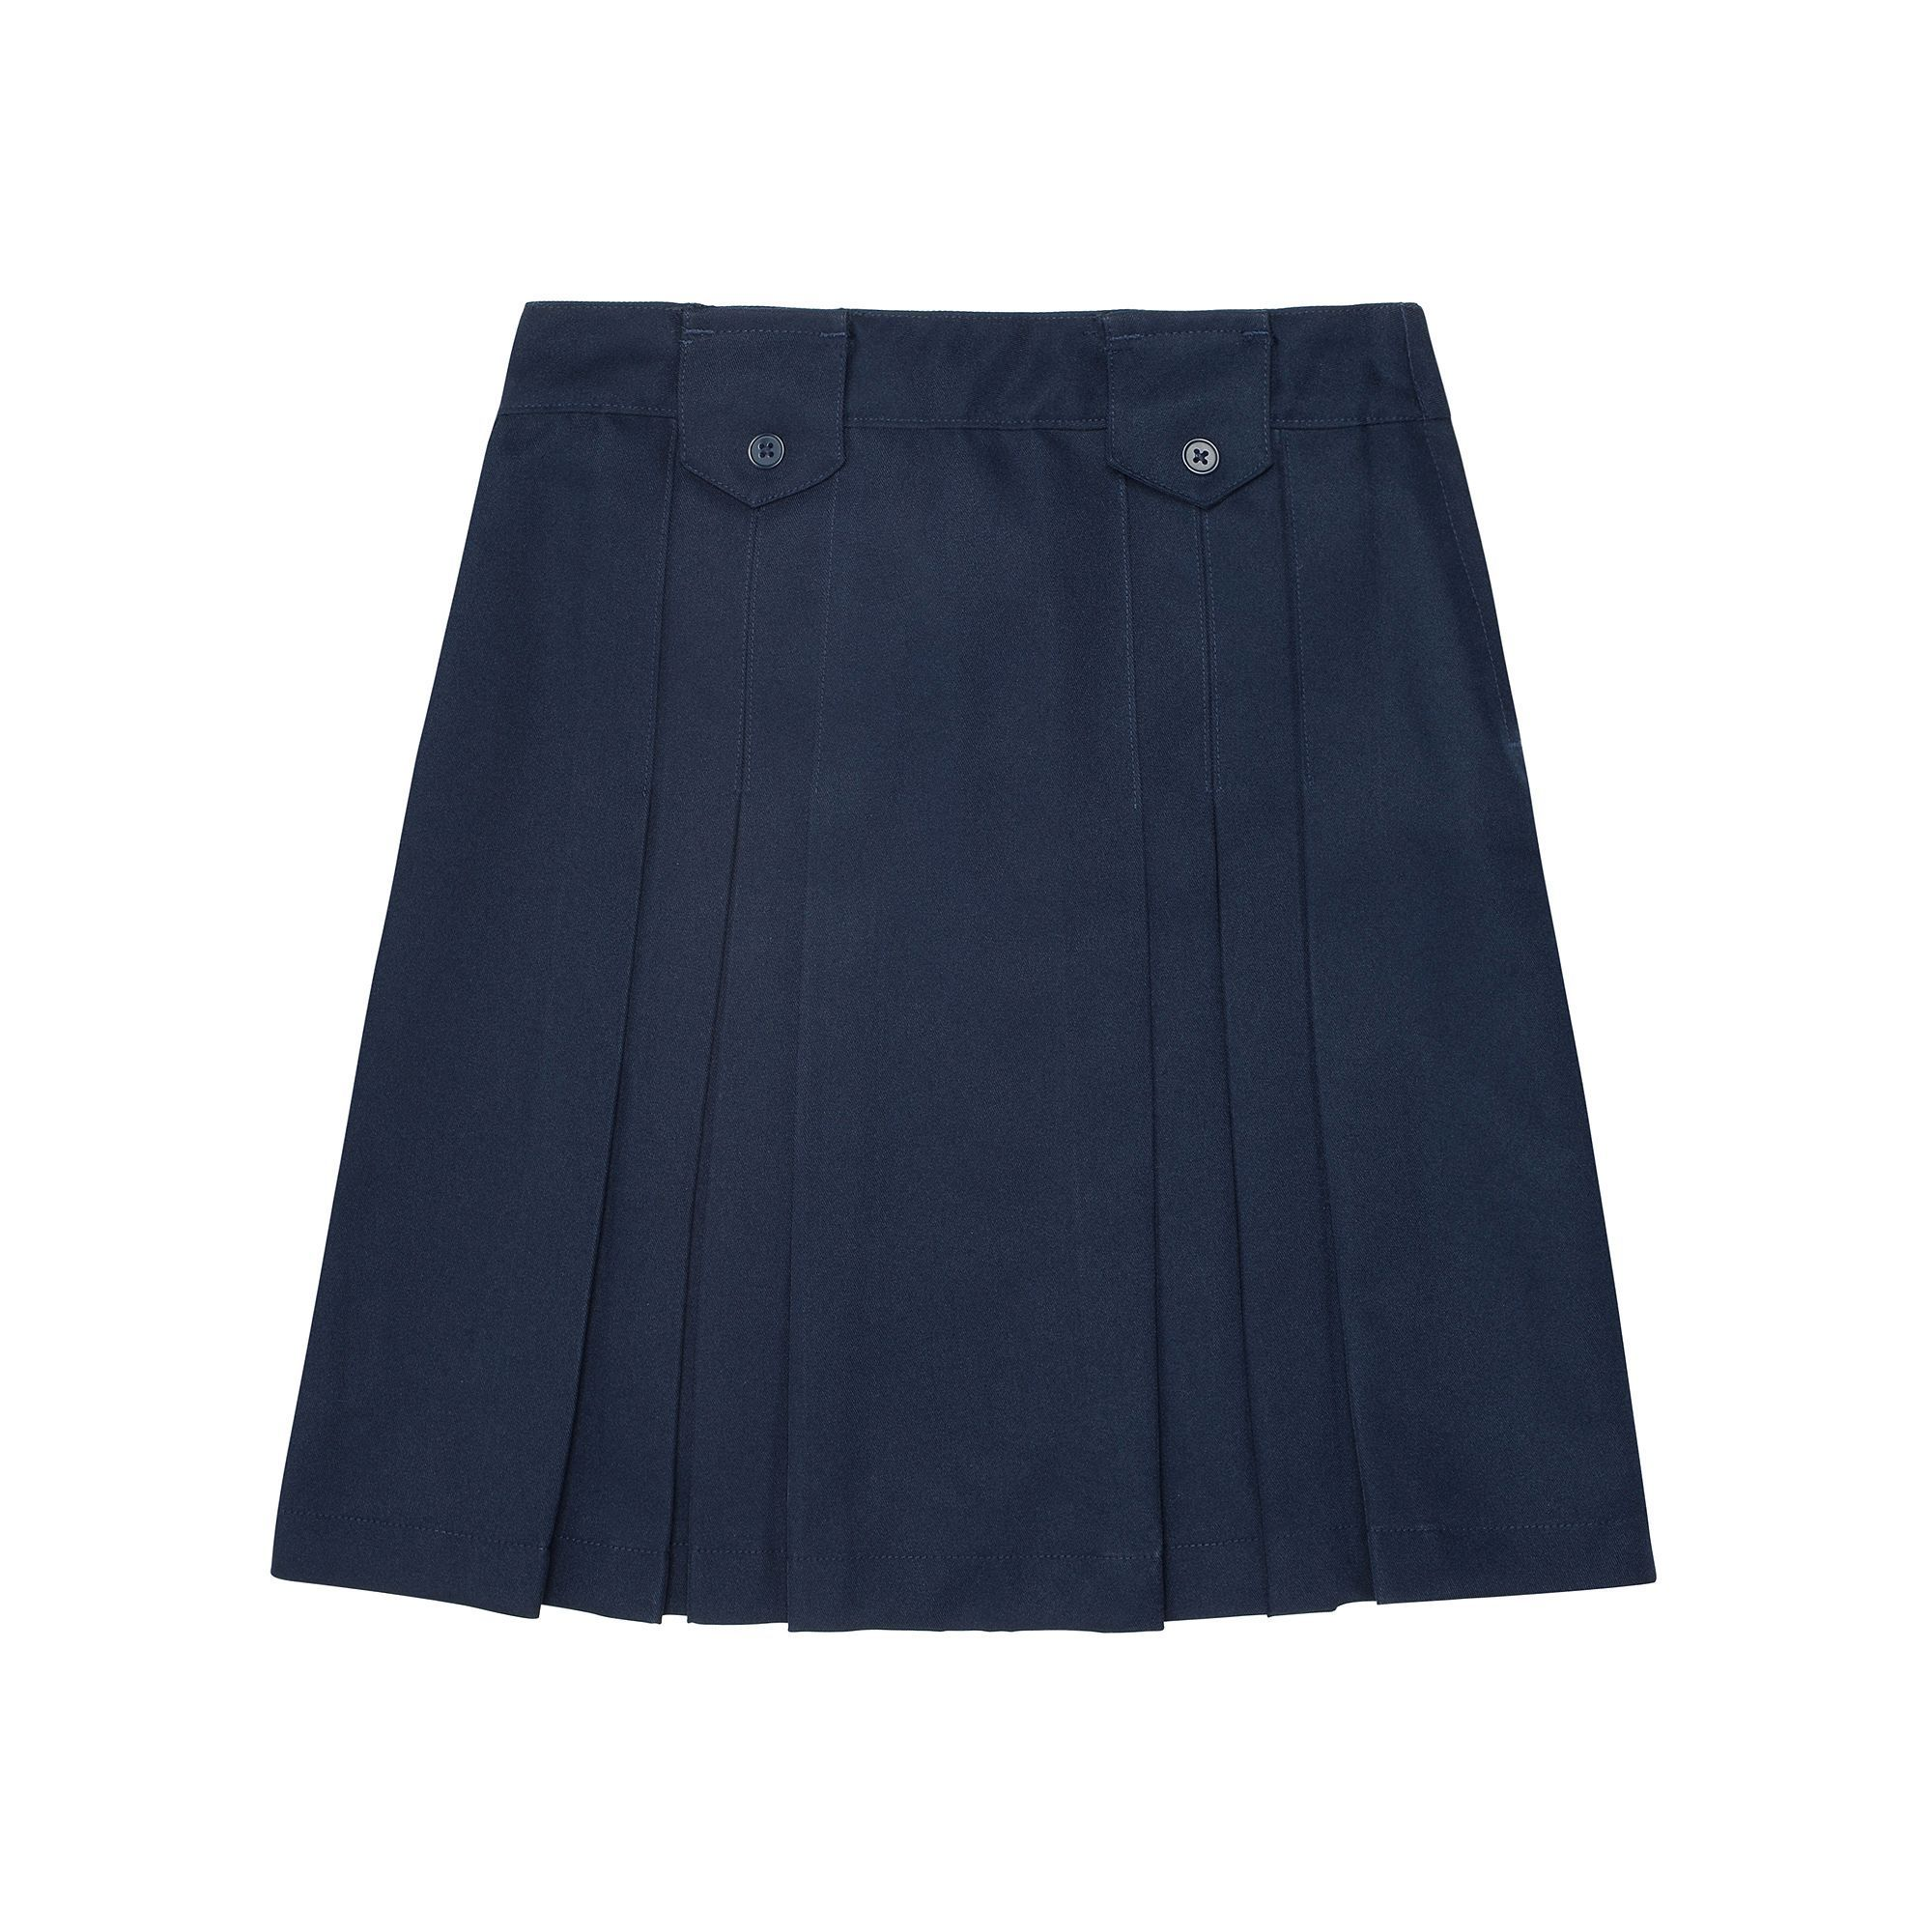 517def1431 Girls 4-20 & Plus Size French Toast School Uniform Triple Pleated Skirt,  Size: 12 Plus, Blue (Navy)